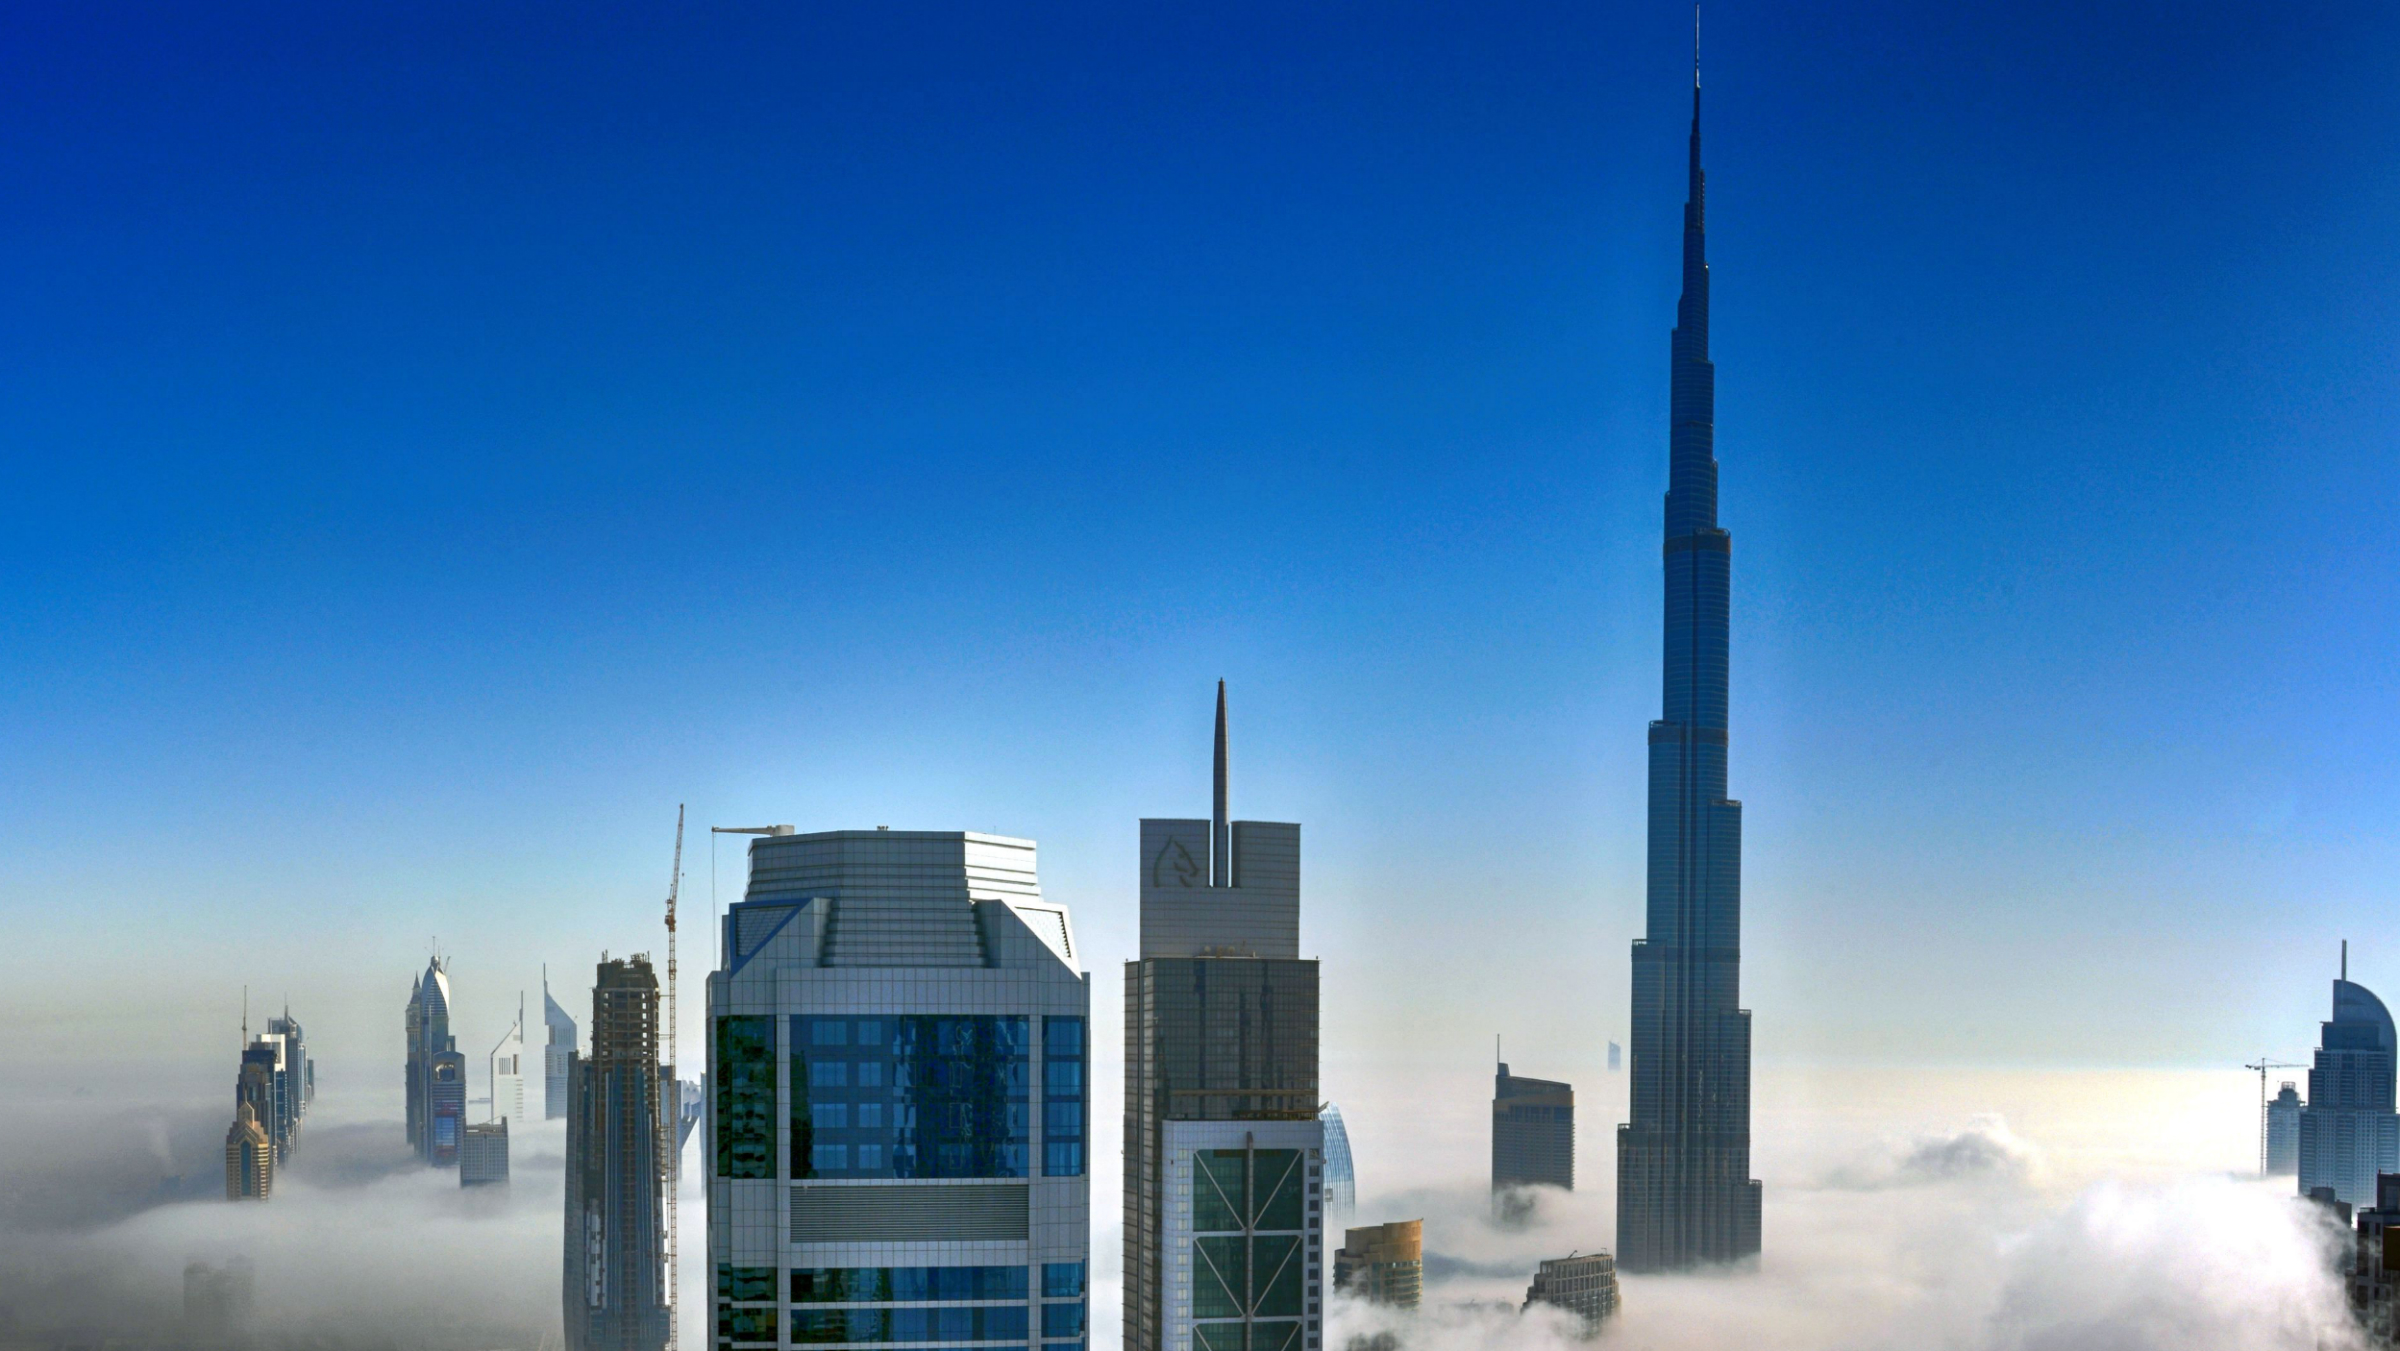 """Beautiful Blanket Of Fog Covers Dubai Residents in these high-rise blocks really do have their heads in the clouds - as the top of their buildings can just be seen poking out above a thick fog. Photographer Shiva Menon snapped the Dubai skyline from above the fog in his apartment on the 52nd floor of the MBK Tower. But the bed of fog was so dense it was impossible to see the horizon or even ground below. Instead, the tops of the buildings in the downtown Business Bay area - including the luxury Burj Al Arab hotel - appear to rise eerily from the fog. Many of the buildings are still under construction. Shiva, 37, from Dubai, took the photographs at around 7.30am before the early morning mist had a chance to clear. He said: """"The sea of mist was caused by a natural phenomena. """"Every year around this time the temperature begins to drop and humidity meets cooler air, forming the 'rolling fog'. """"As the sun rises it burns away the mist to reveal the desert once again. """"The thick white fog develops overnight as a result of the disparity between high temperatures and humidity during the day and the drop of the mercury during the night."""" The fog - which floats around 30 metres above the ground - is only this thick on a few days each year, usually between September and November. However, on other days it is still """"prominent"""" enough to affect visibility and traffic in the Emirate state. Shiva added: """"I was able to capture the scene with its actual essence, serenity and uniqueness. """"It was totally surreal and felt like I was in a completely different galaxy. """"It was quiet mesmerizing and a very calmly experience. A very gorgeous scene."""""""